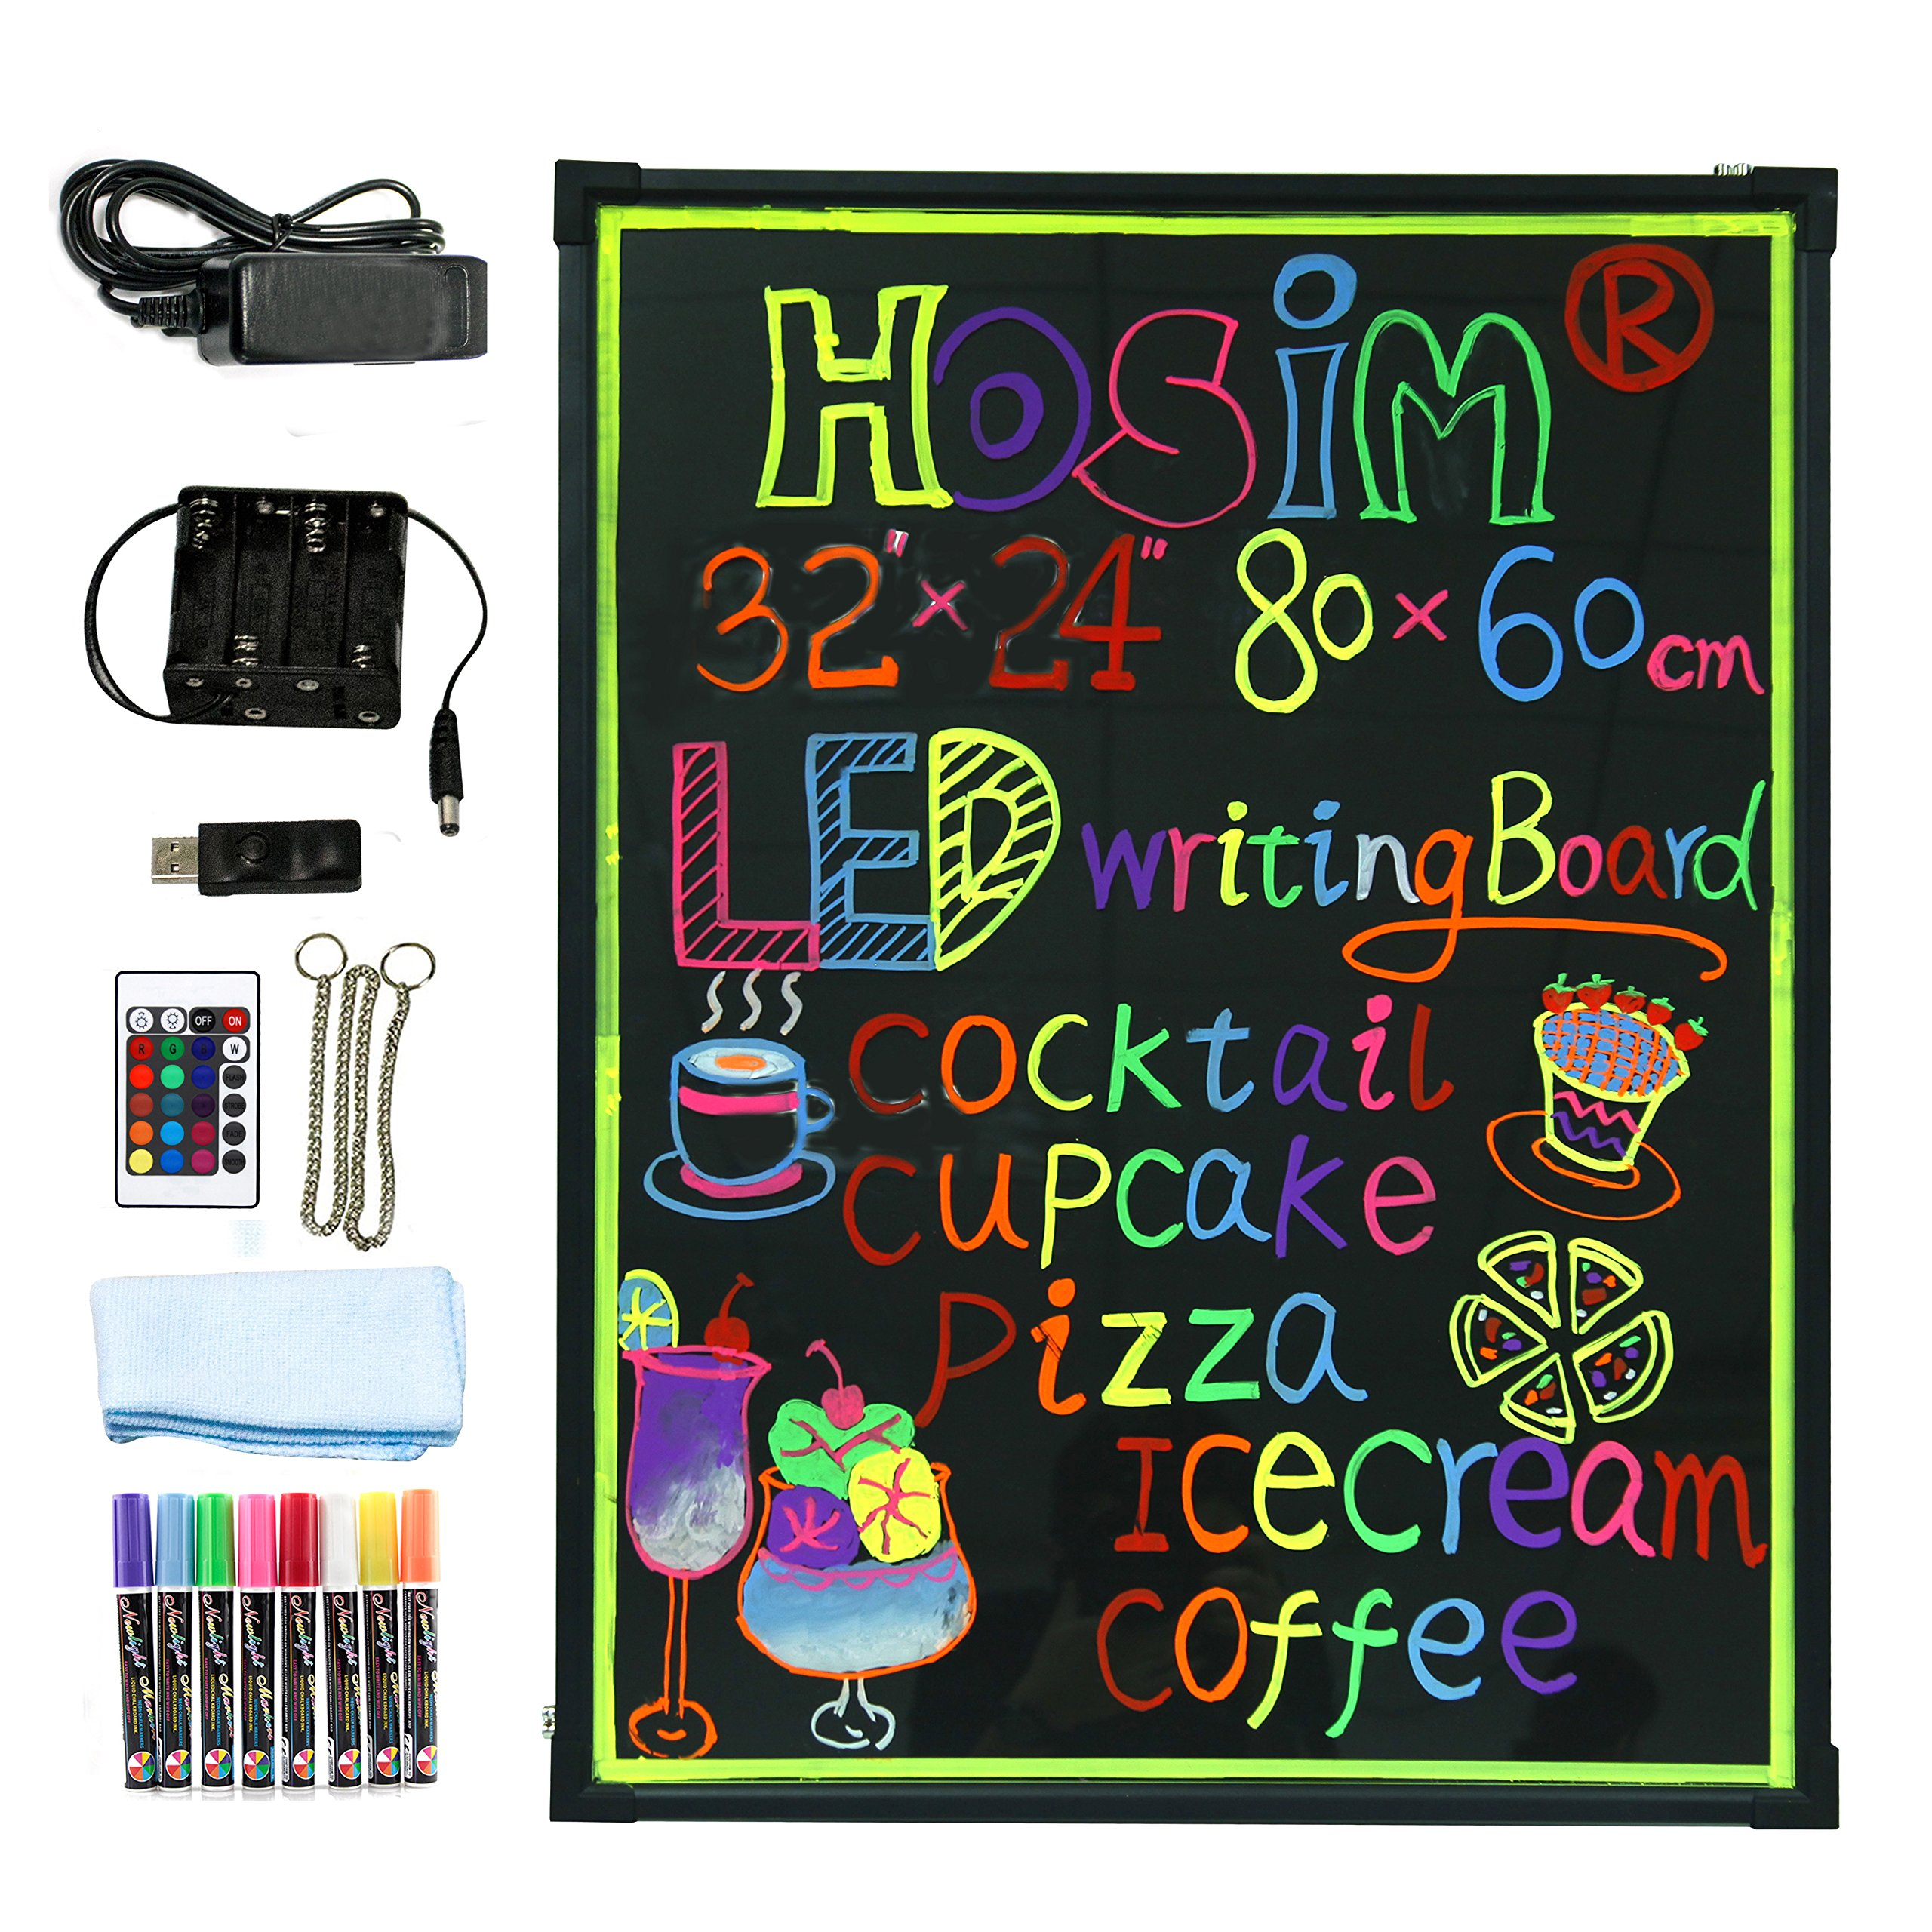 Hosim LED Message Writing Board,32''x24'' Illuminated Erasable Neon Effect Restaurant Menu Sign with 8 colors Markers, 7 Colors Flashing Mode DIY Message Chalkboard for Kitchen Wedding Promotions (6080)